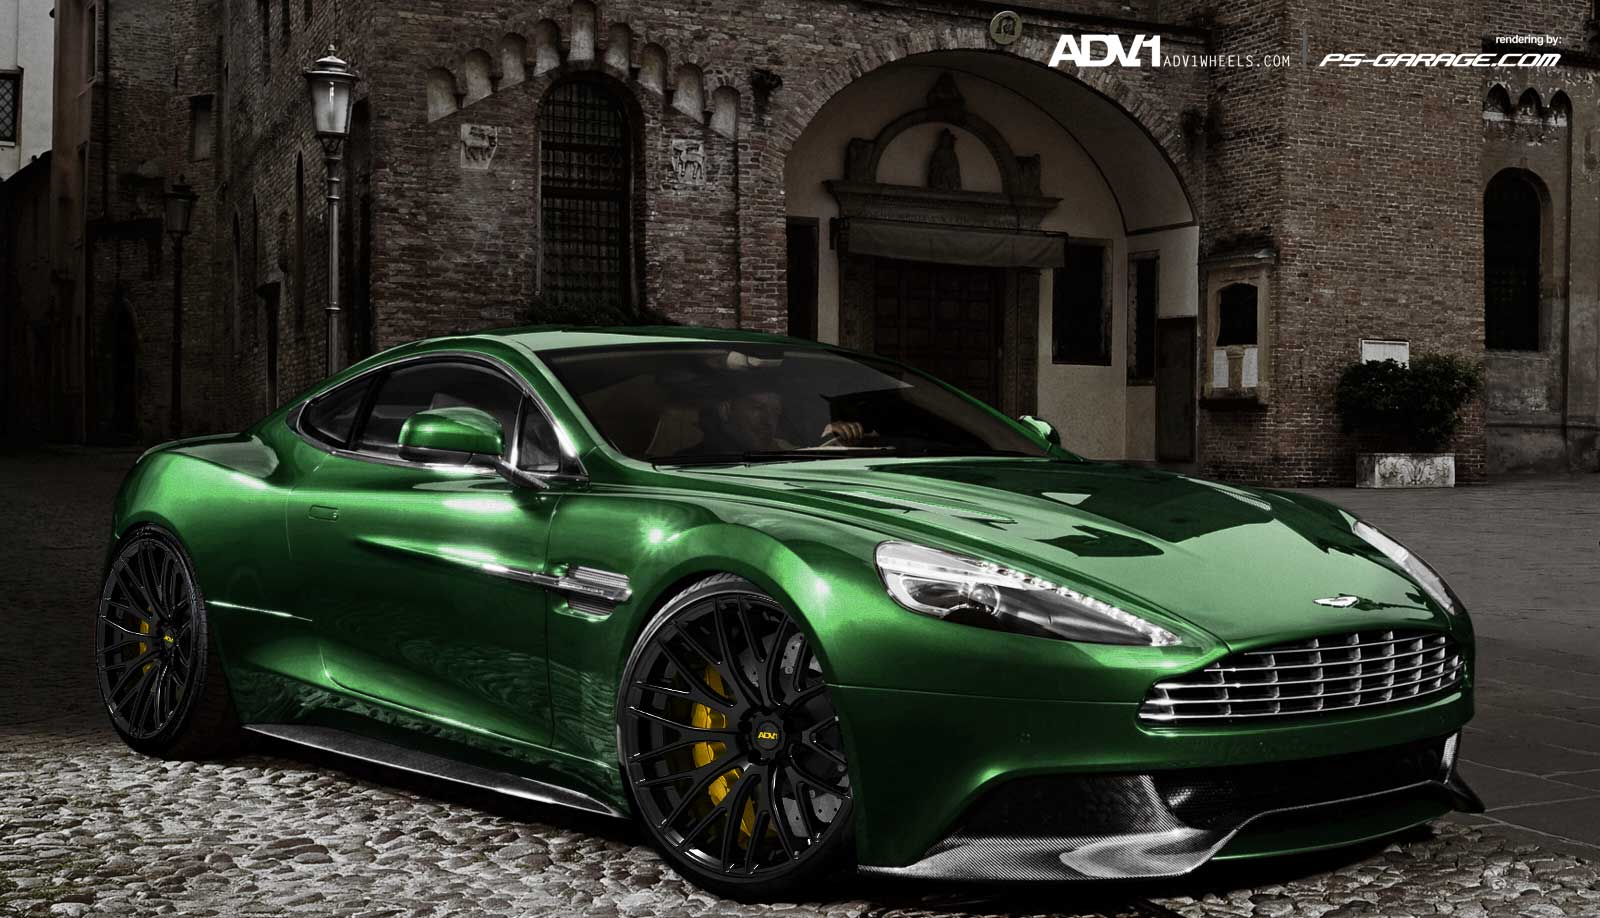 Aston Martin Db9 Vanquish Aston Martin Vanquish 2013 Review Amazing Pictures And Images